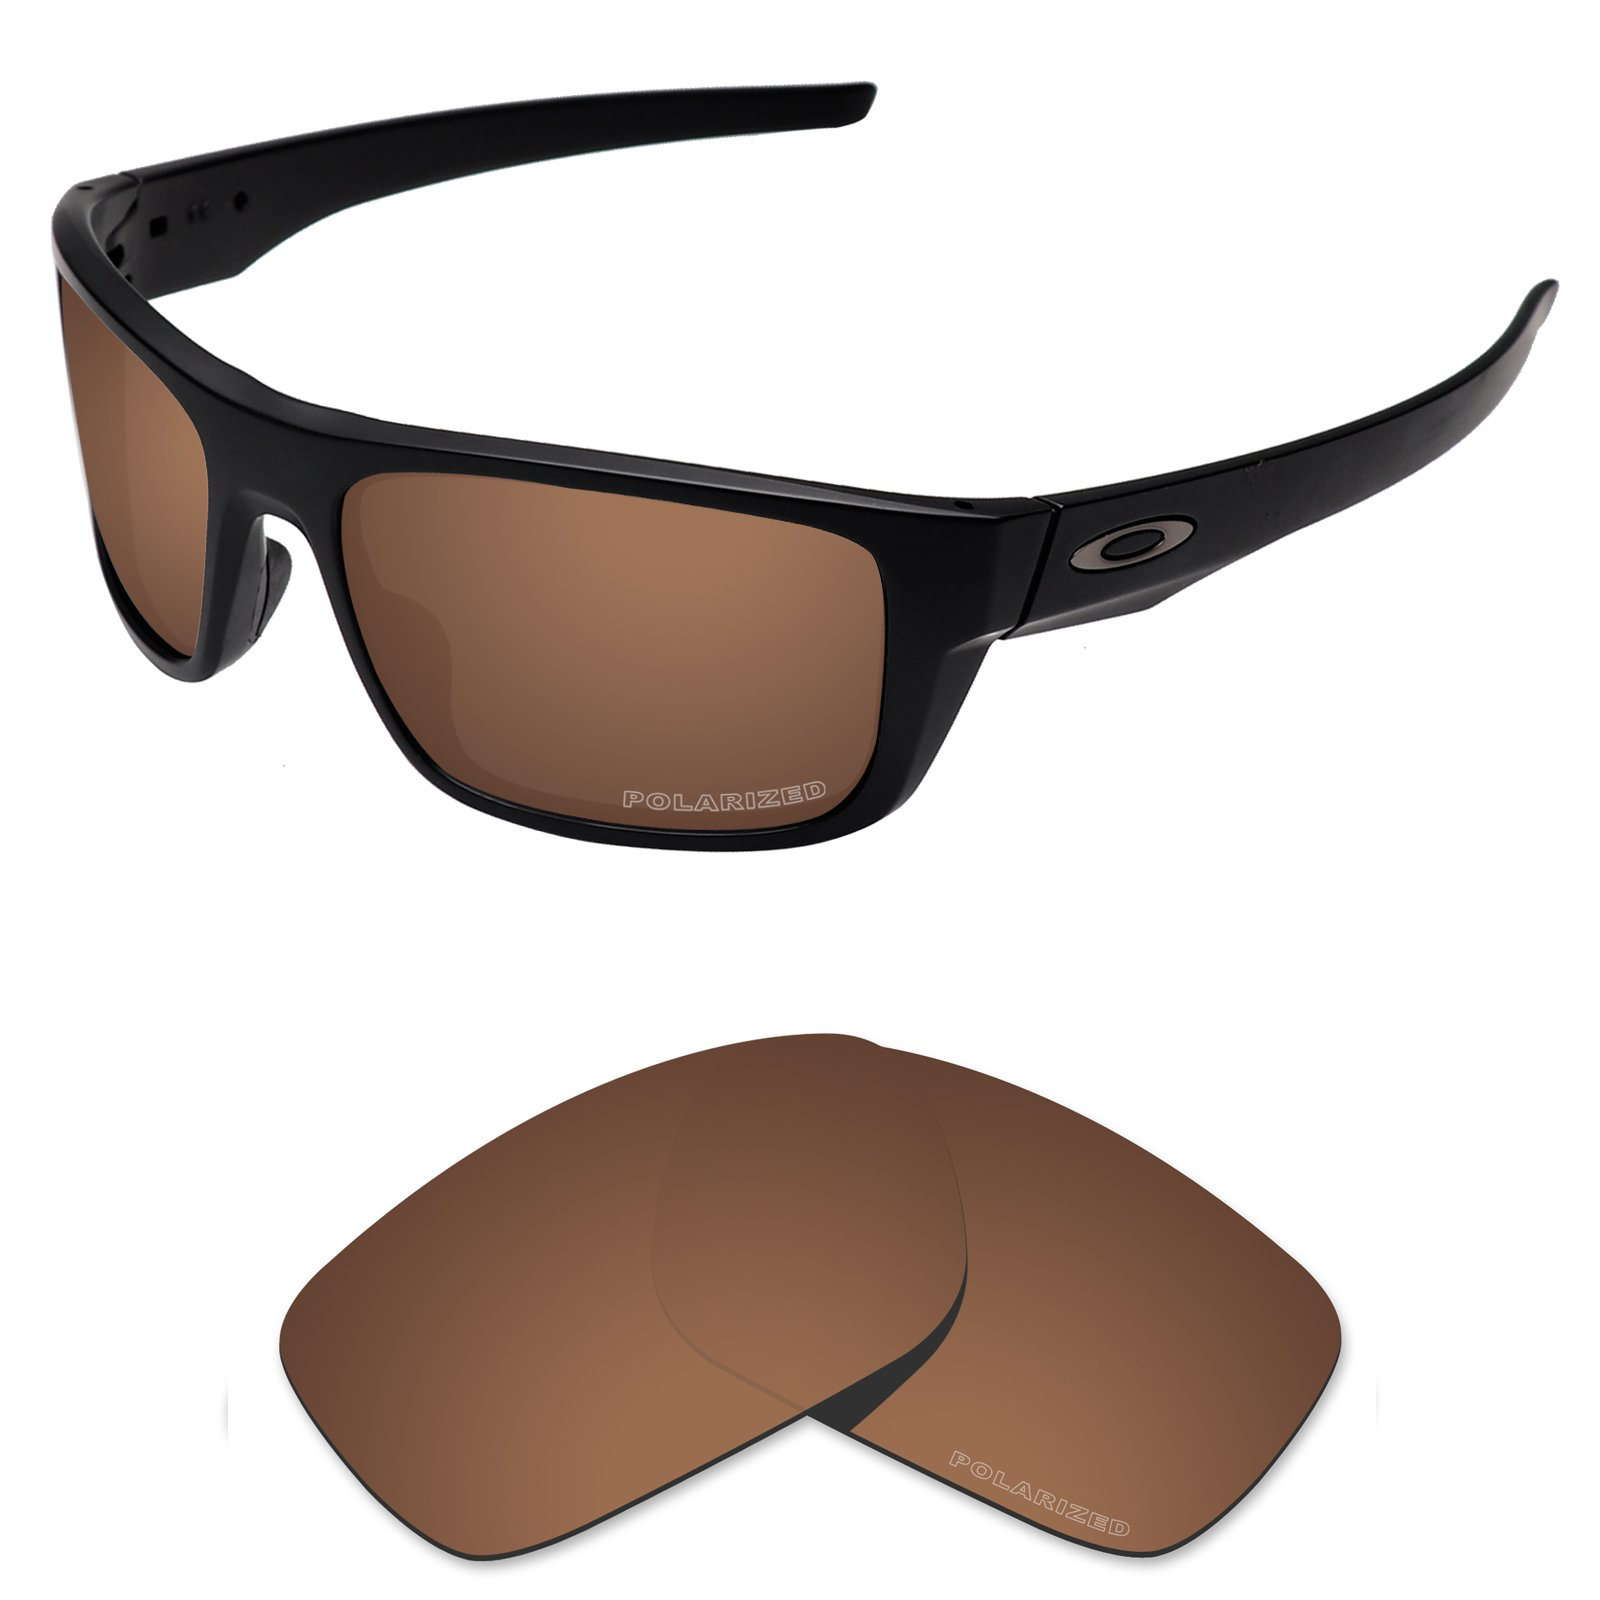 Tintart Performance Replacement Lenses for Oakley Drop Point Sunglass Polarized Etched-Nut Brown